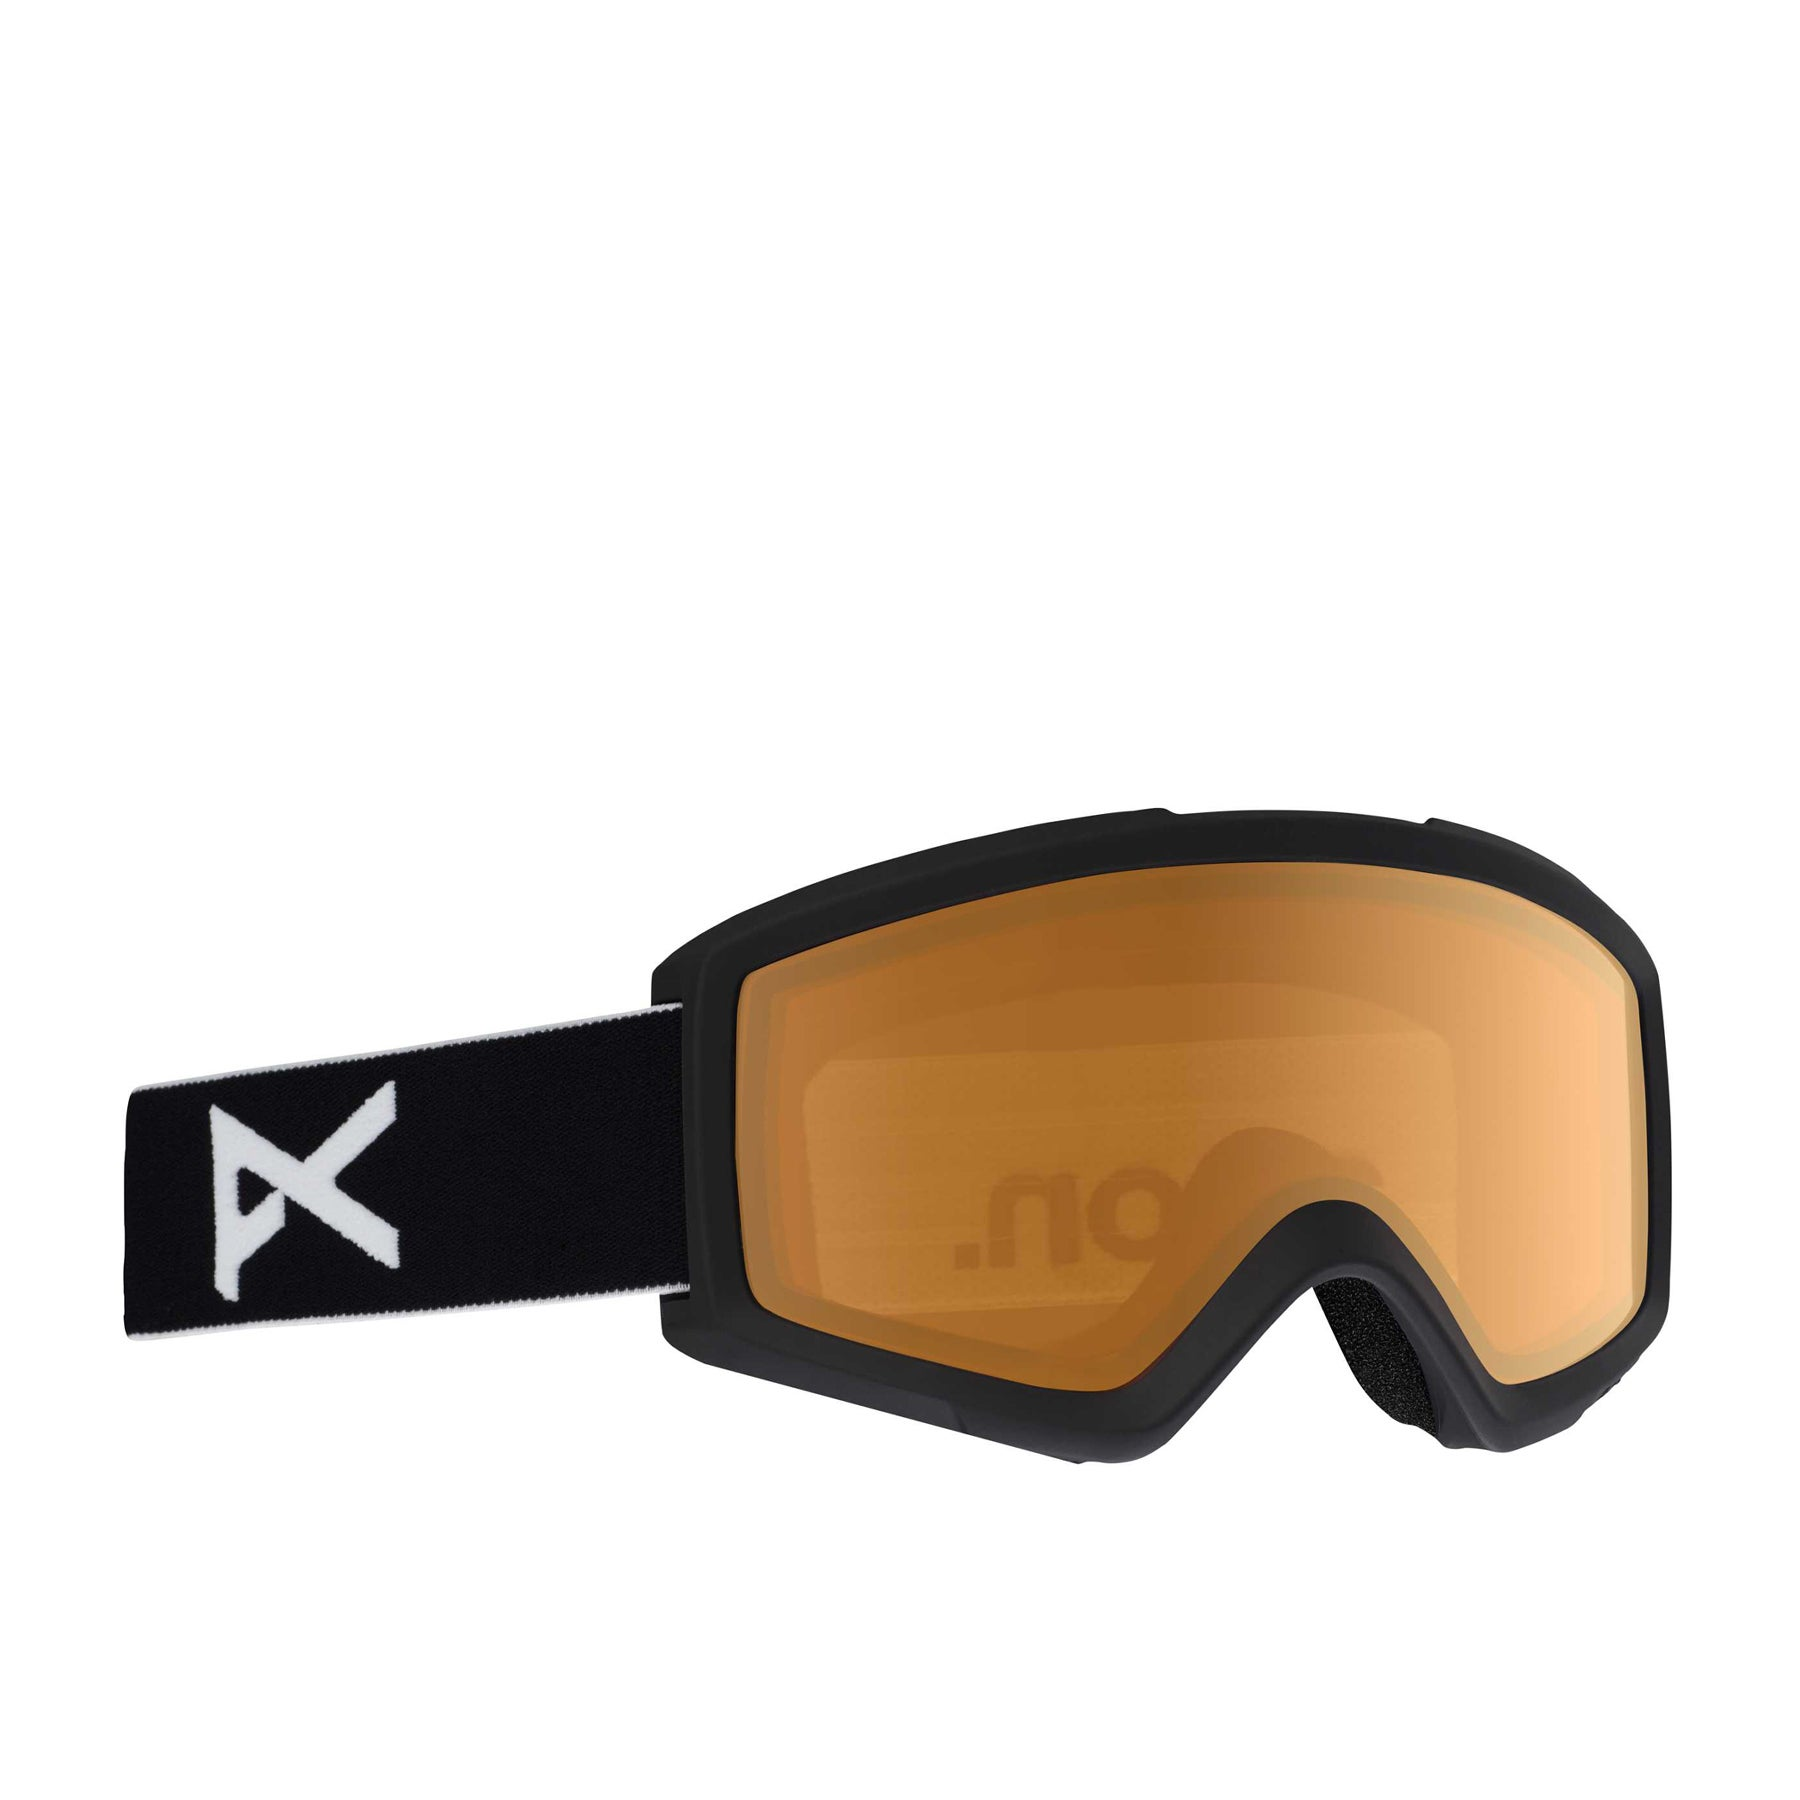 Anon Black Helix 20 Schneebrille - Amber